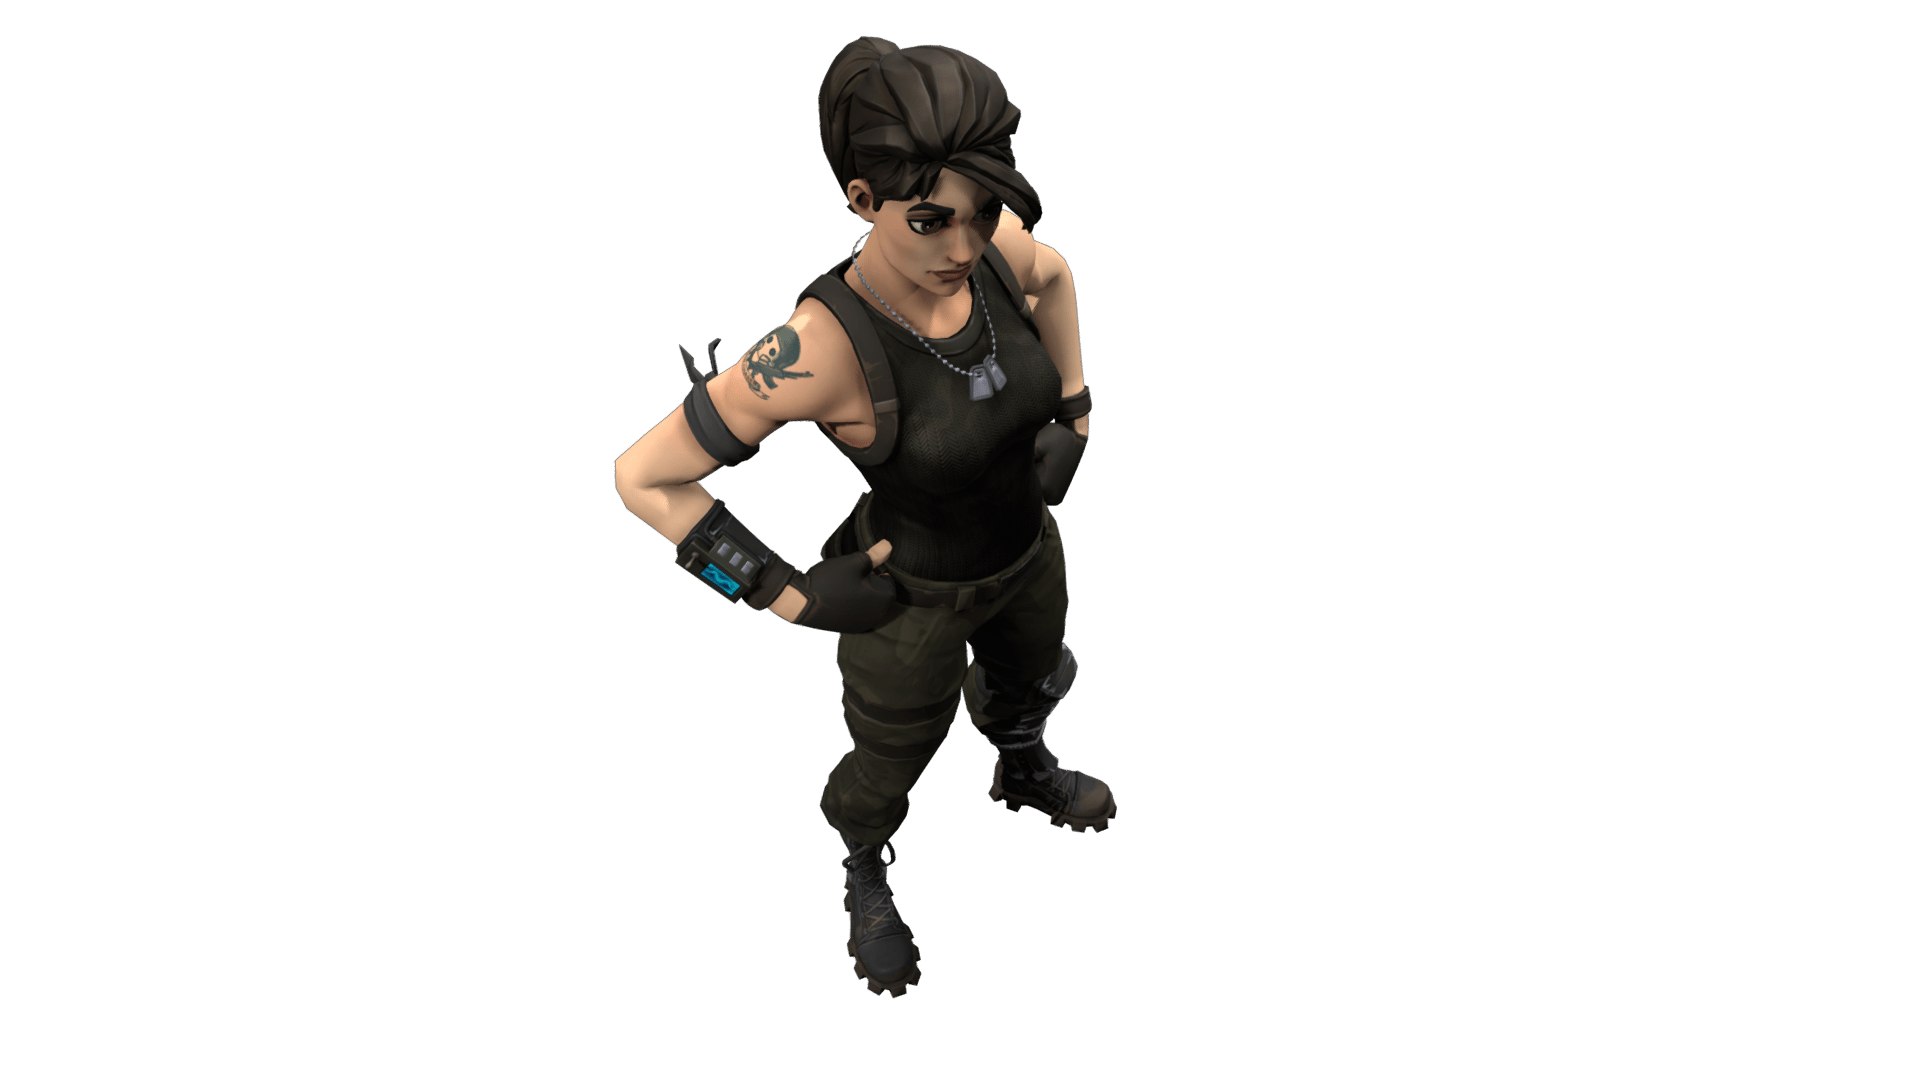 Fortnite Thumbnail Background Png | Fortnite Free 40 Tiers